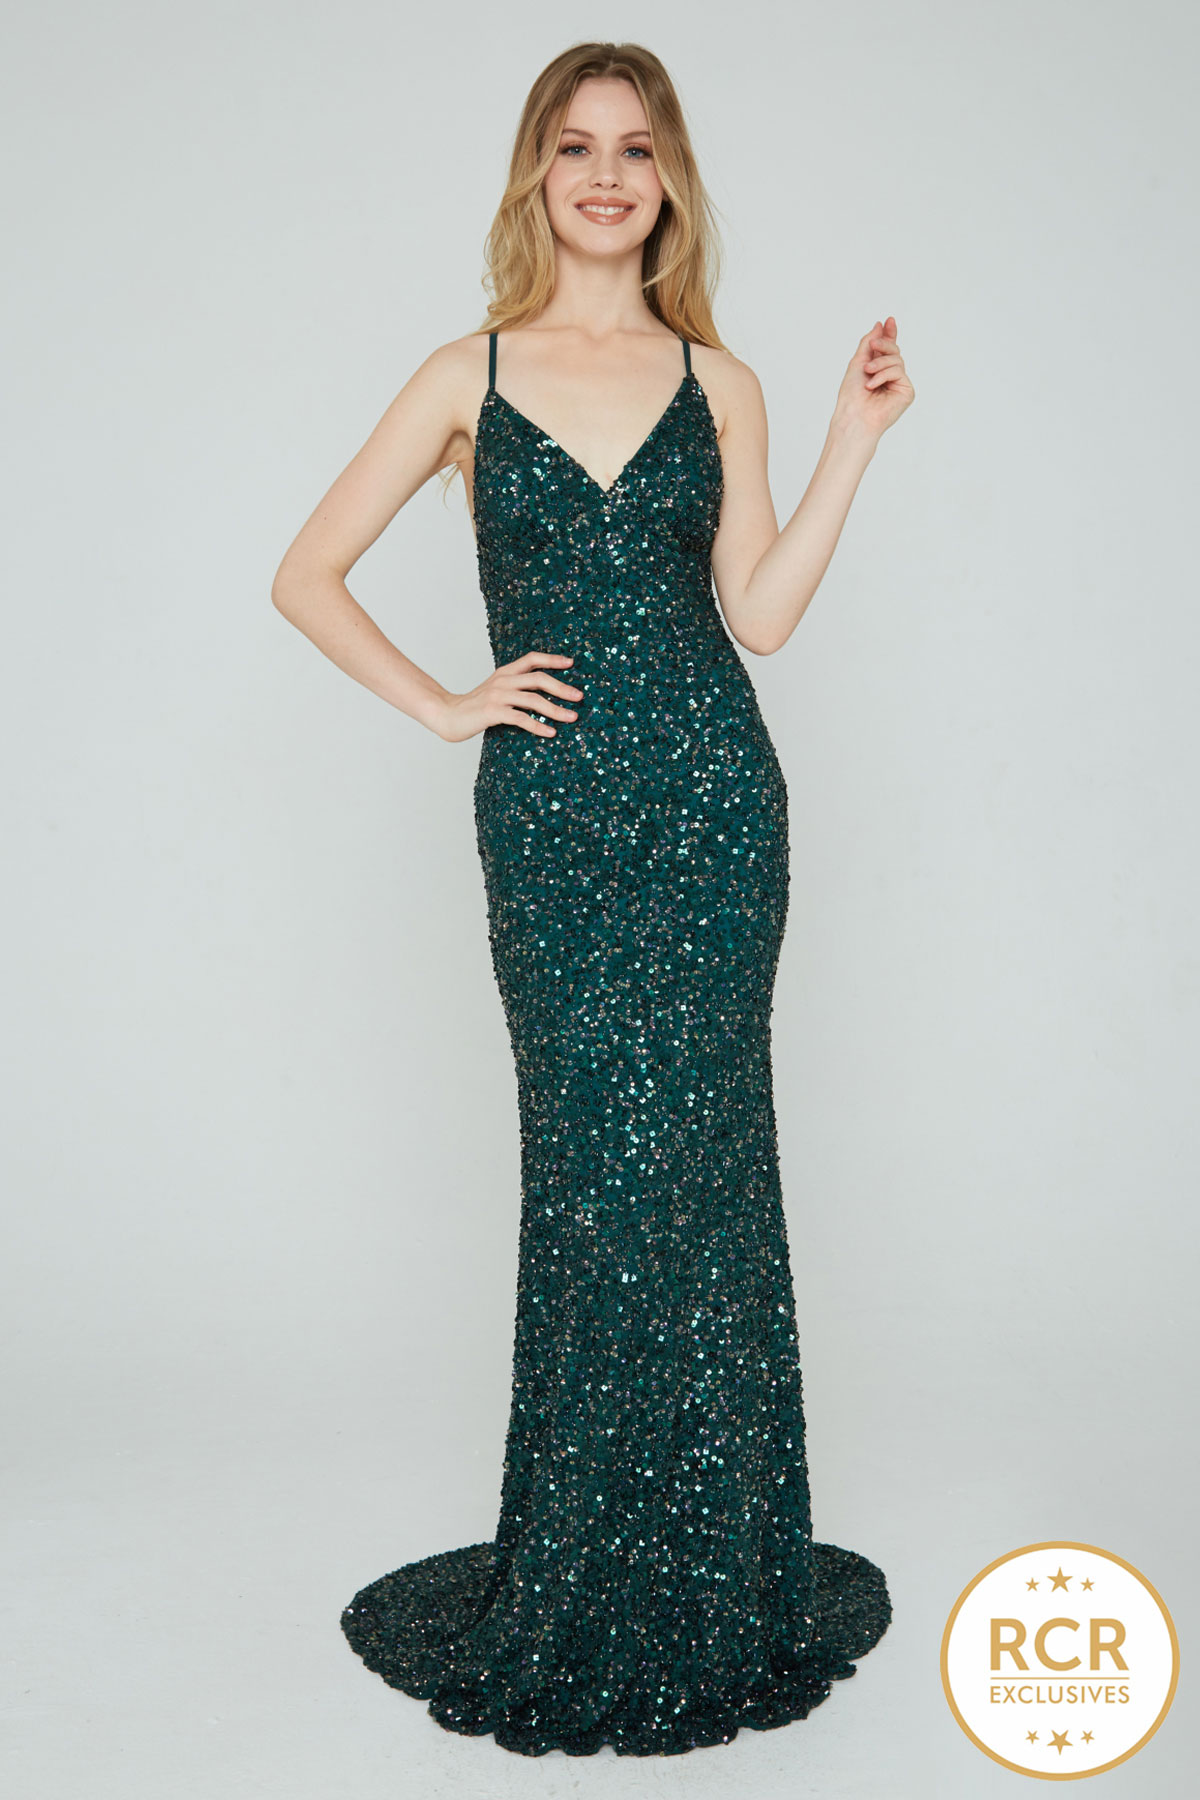 Sleeveless sparkly bodycon dress with sequin embellishments and a low-cut v-neck and straps.